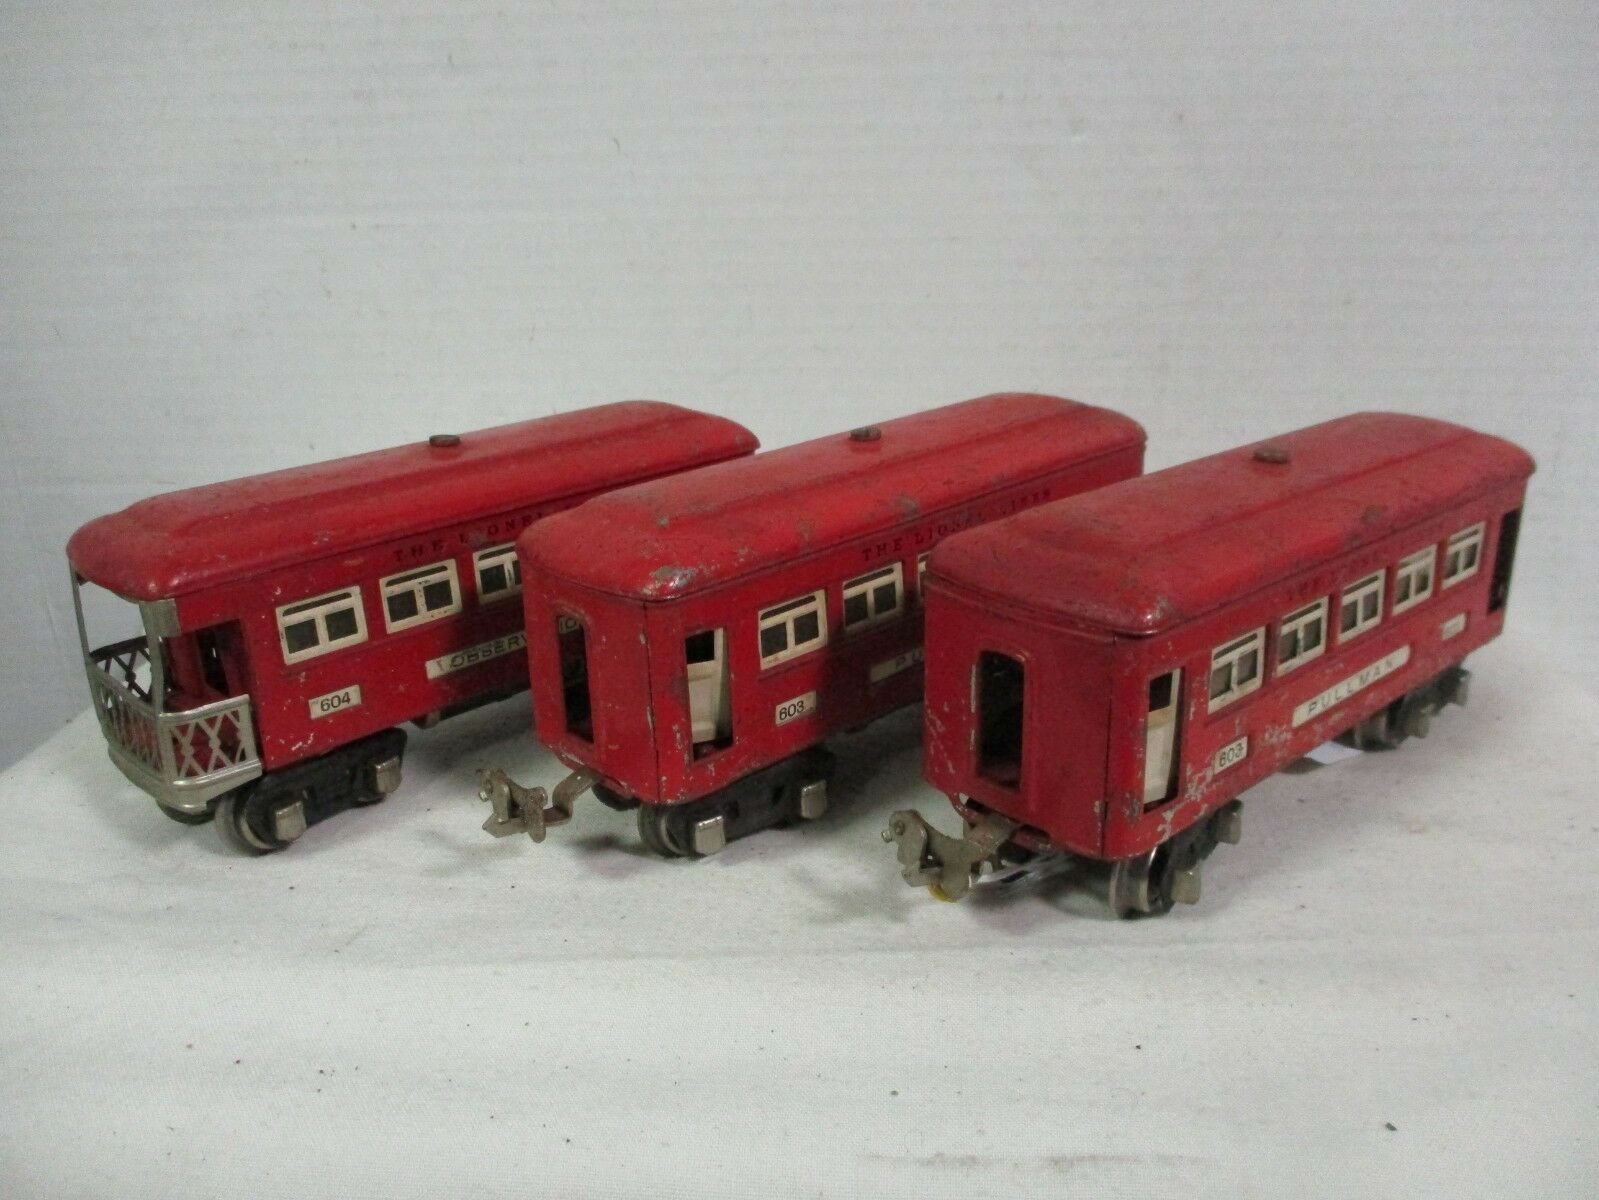 Lionel 603, 603, and 604 Red Comet Cars Vintage Model Railway Train Cars B3